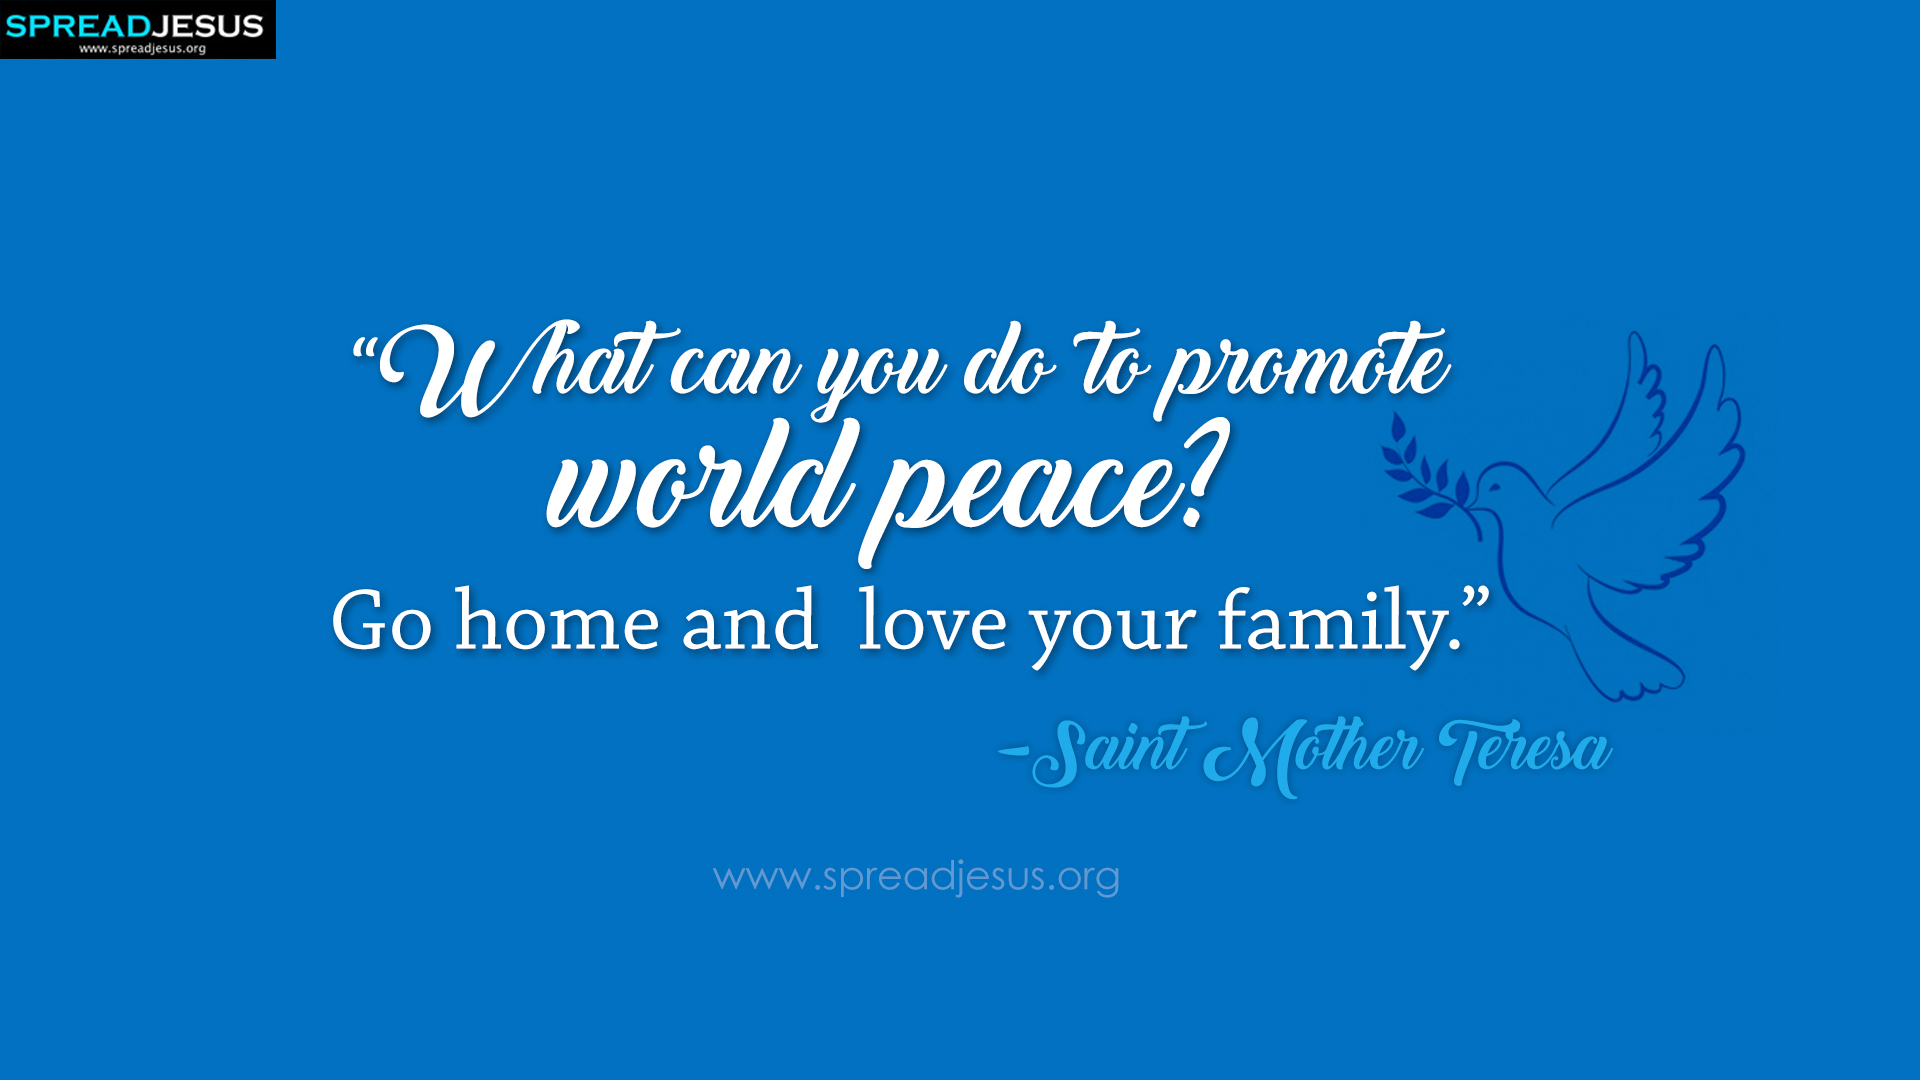 Saint Mother Teresa Quotes HD-Wallpaper promote world peace?